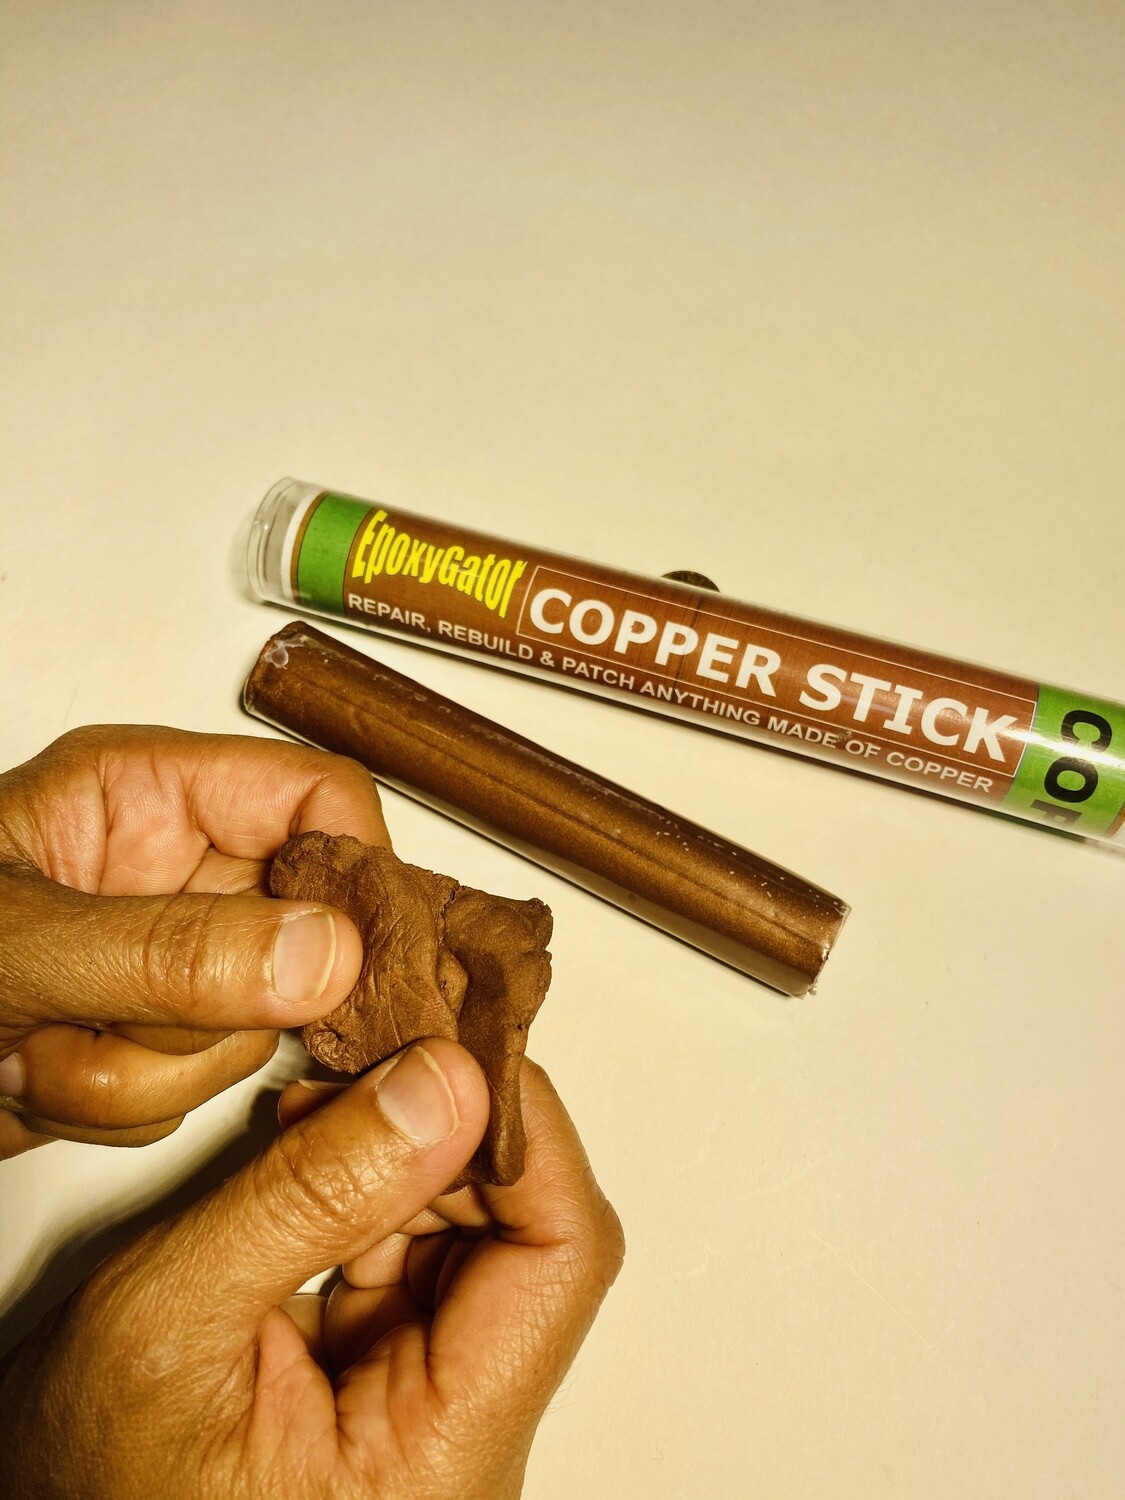 Epoxy Gator® Copper Stick Epoxy